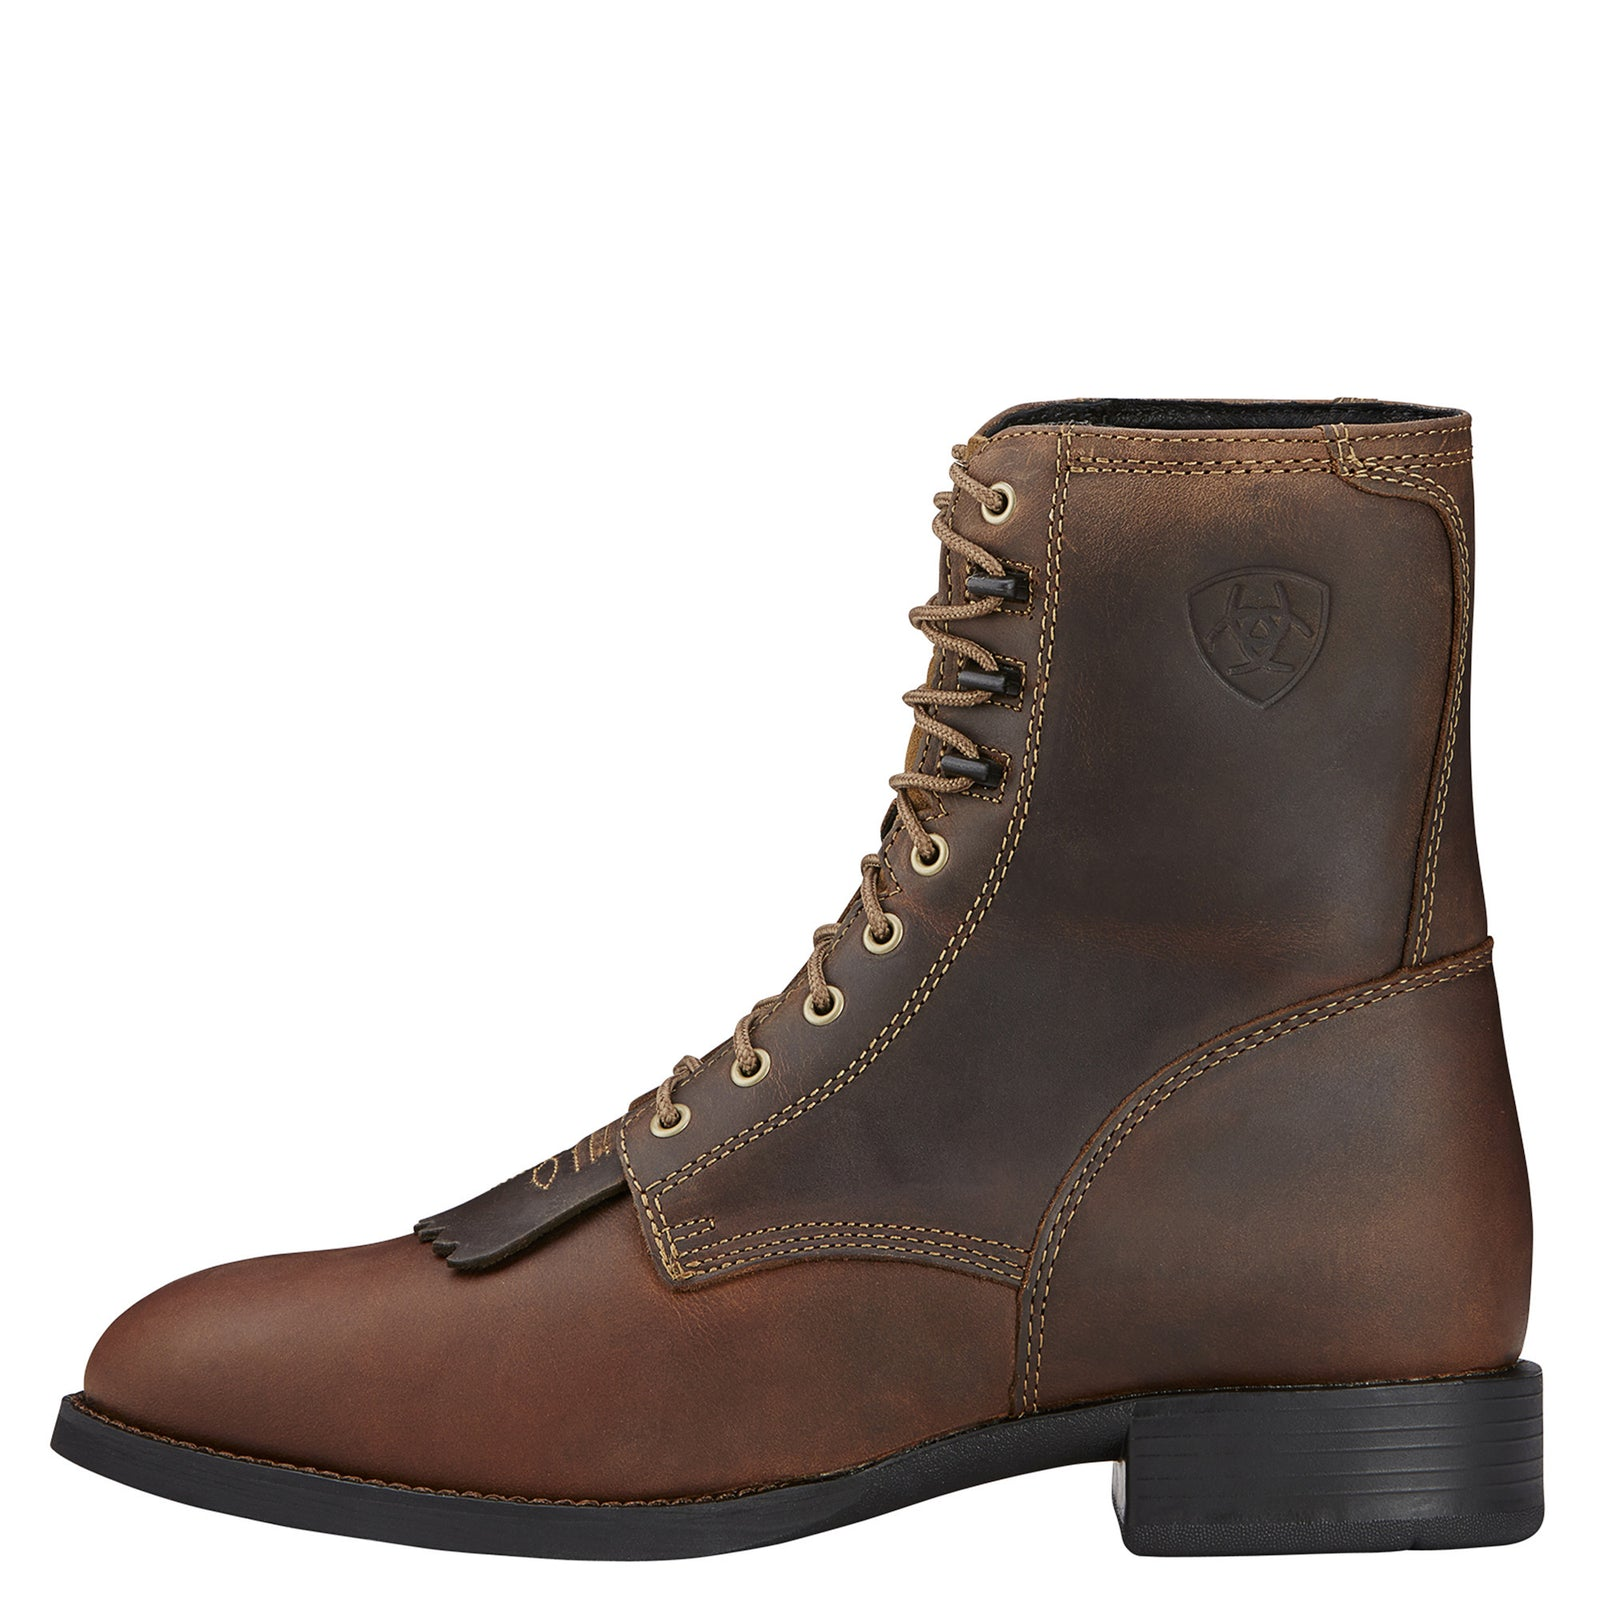 Ariat Men's Herritage Lacer Distressed Brown Boots - VaqueroBoots.com - 3